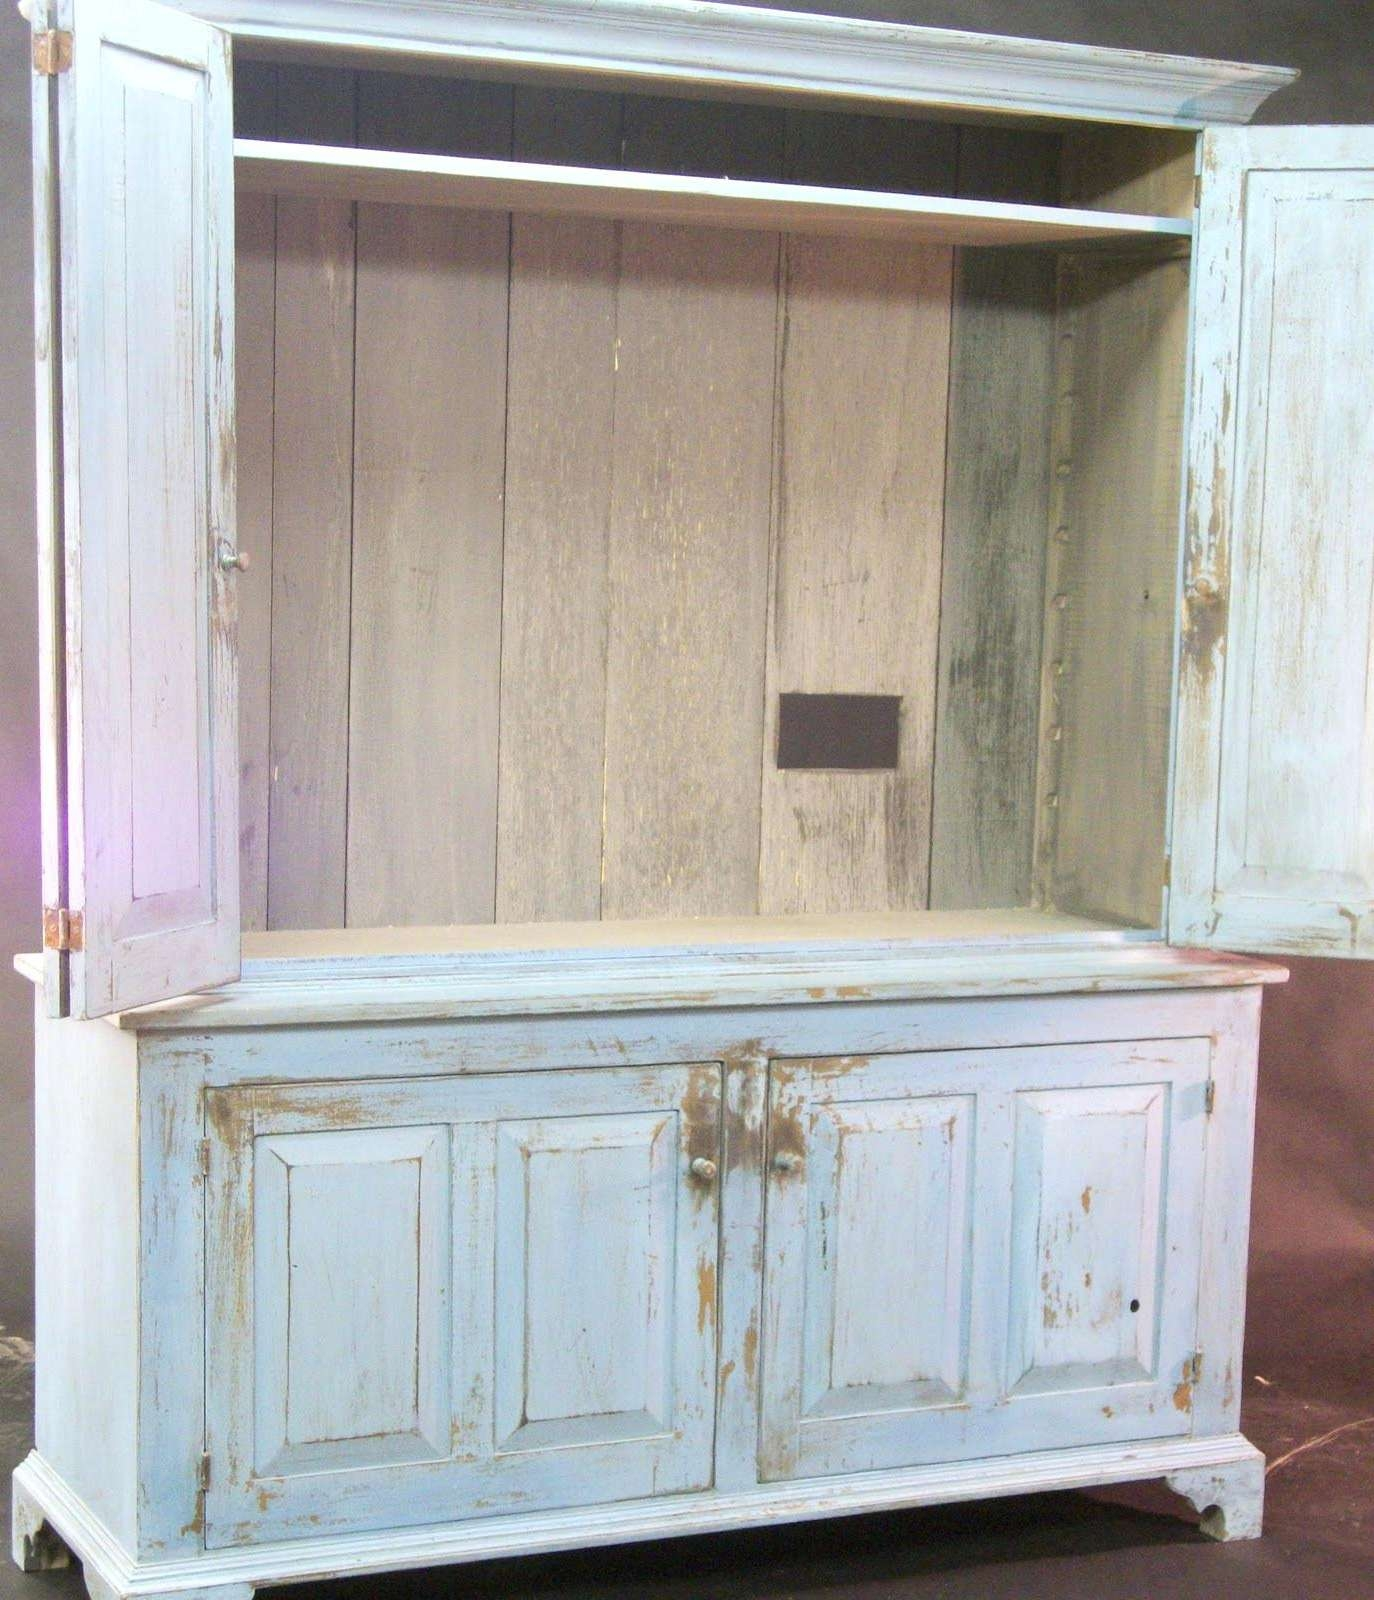 Fresh Enclosed Tv Stand (15 Photos) | Bathgroundspath Within Enclosed Tv Cabinets With Doors (View 4 of 20)